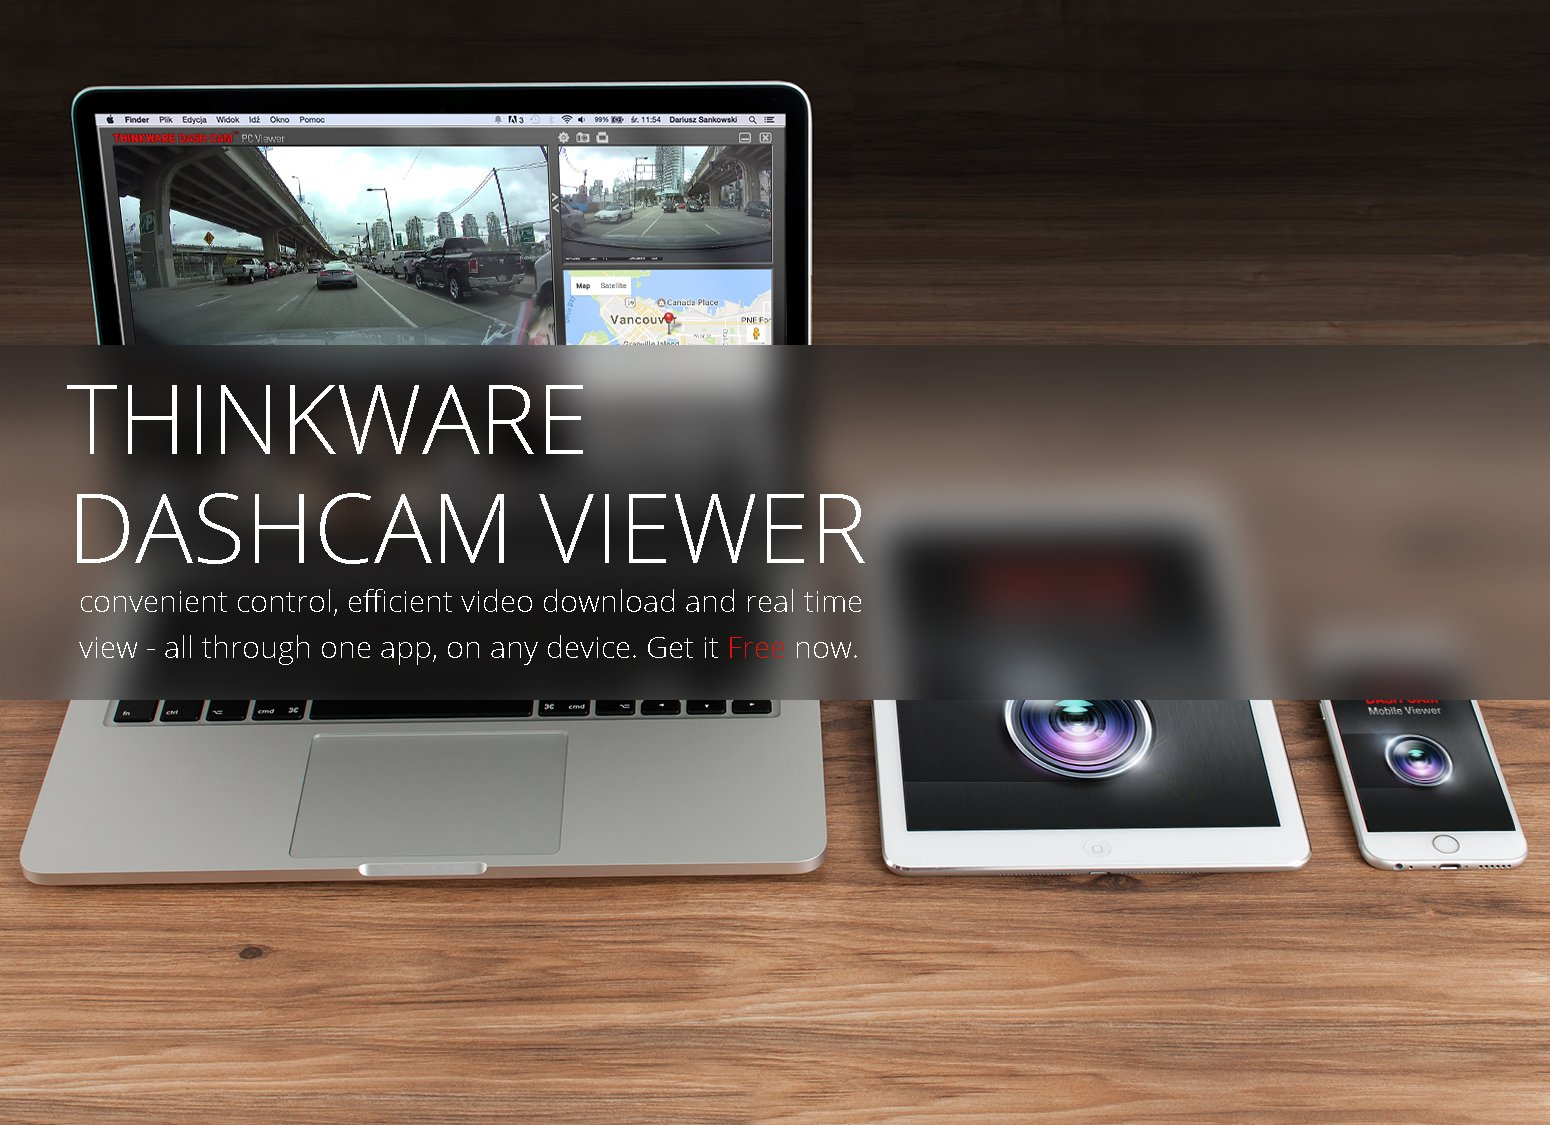 THINKWARE TW-F750D16 F750 2-Channel Dash Cam, 1080P HD Front & Rear, Sony Exmor Sensor, Wi-Fi, Dual Save Technology, Parking Mode, GPS, 16GB SD Card by Thinkware (Image #5)